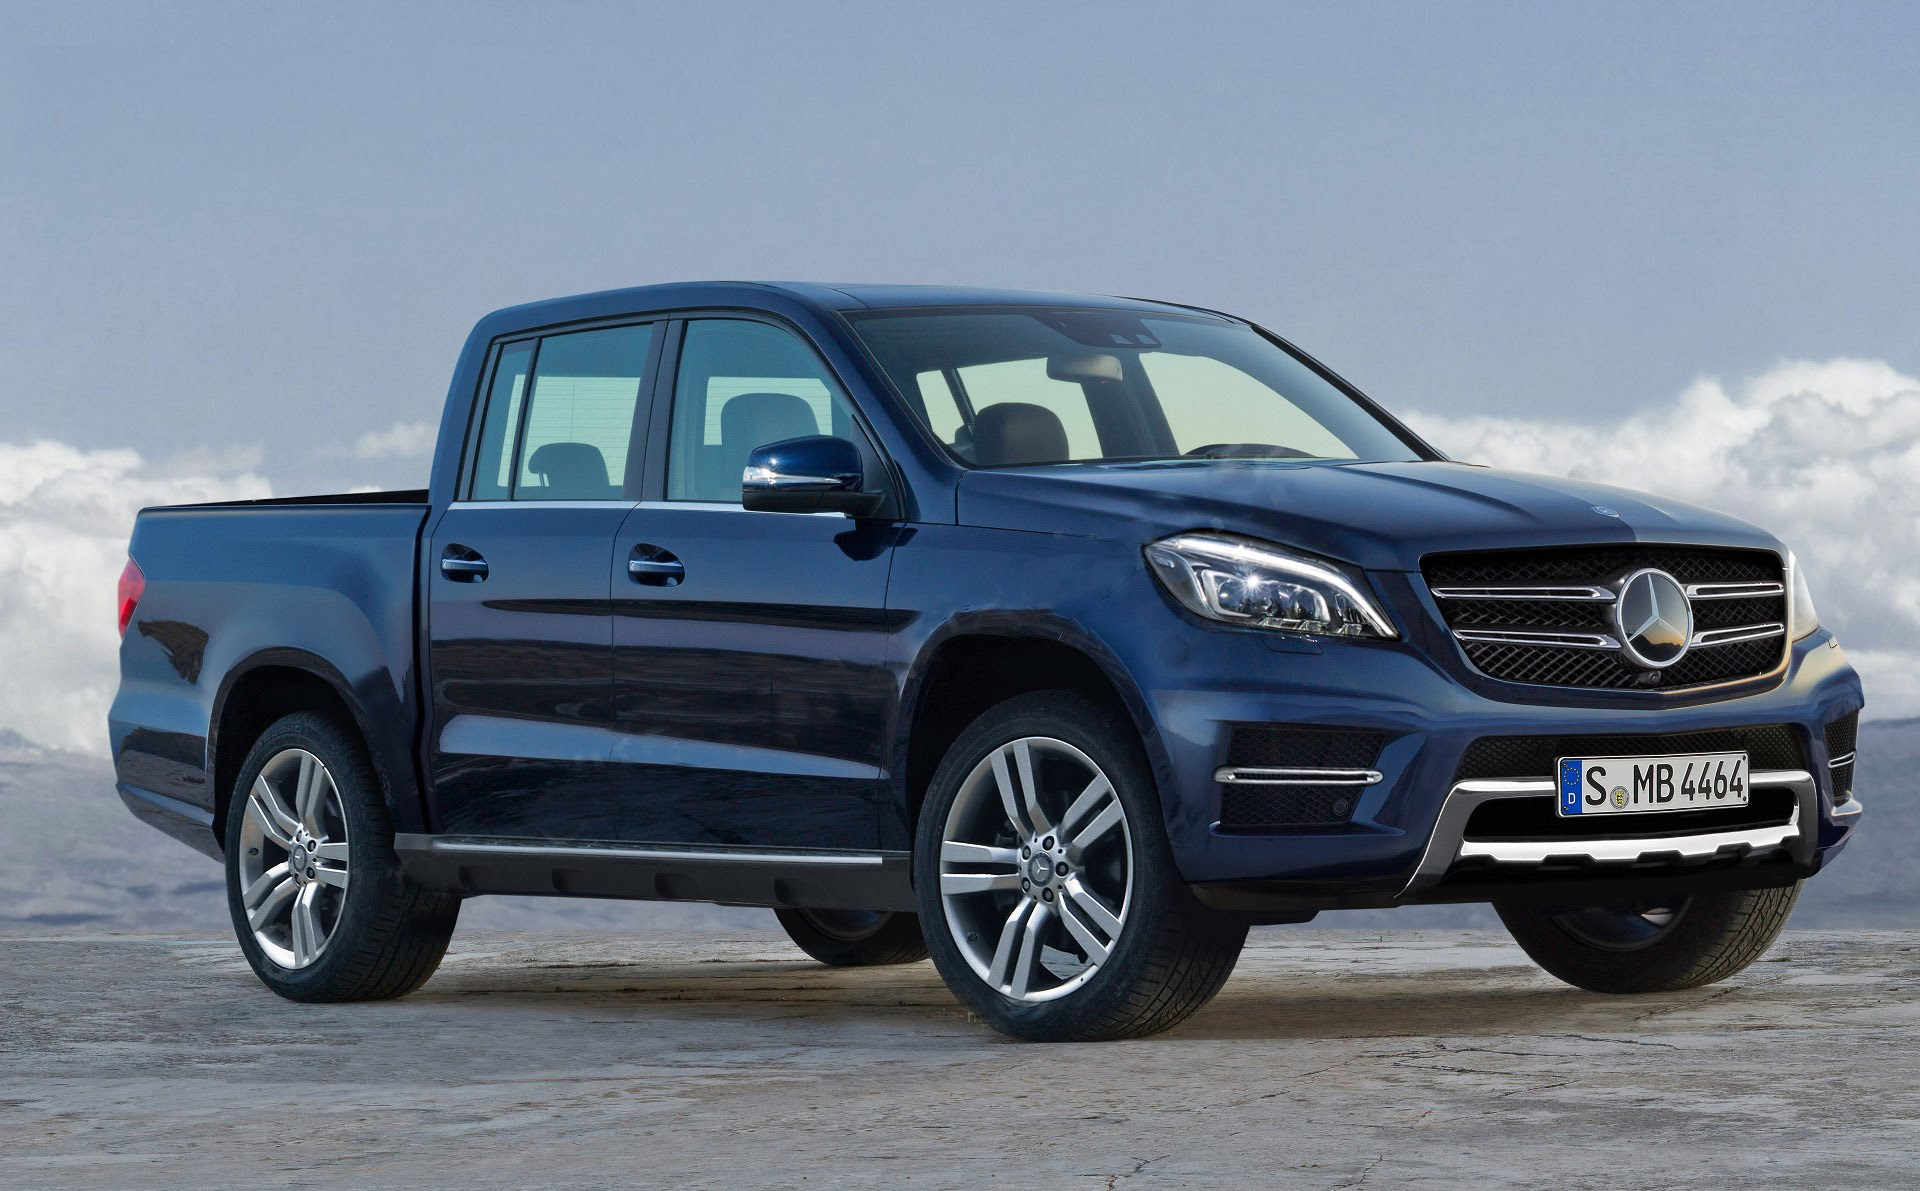 live mercedes benz pick up launch in sweden october 25th